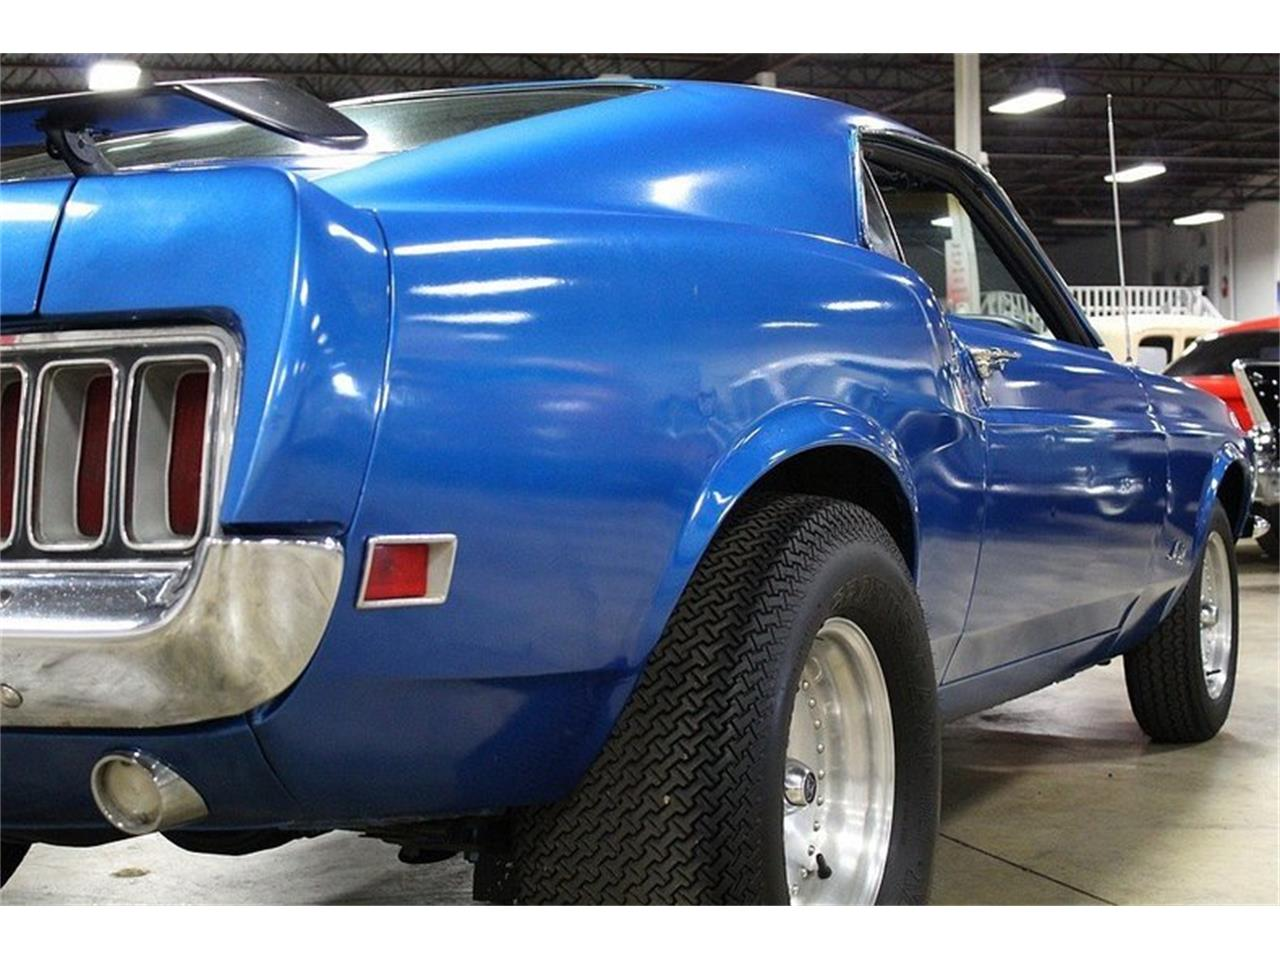 Large Picture of '70 Mustang - $25,900.00 - MHE4